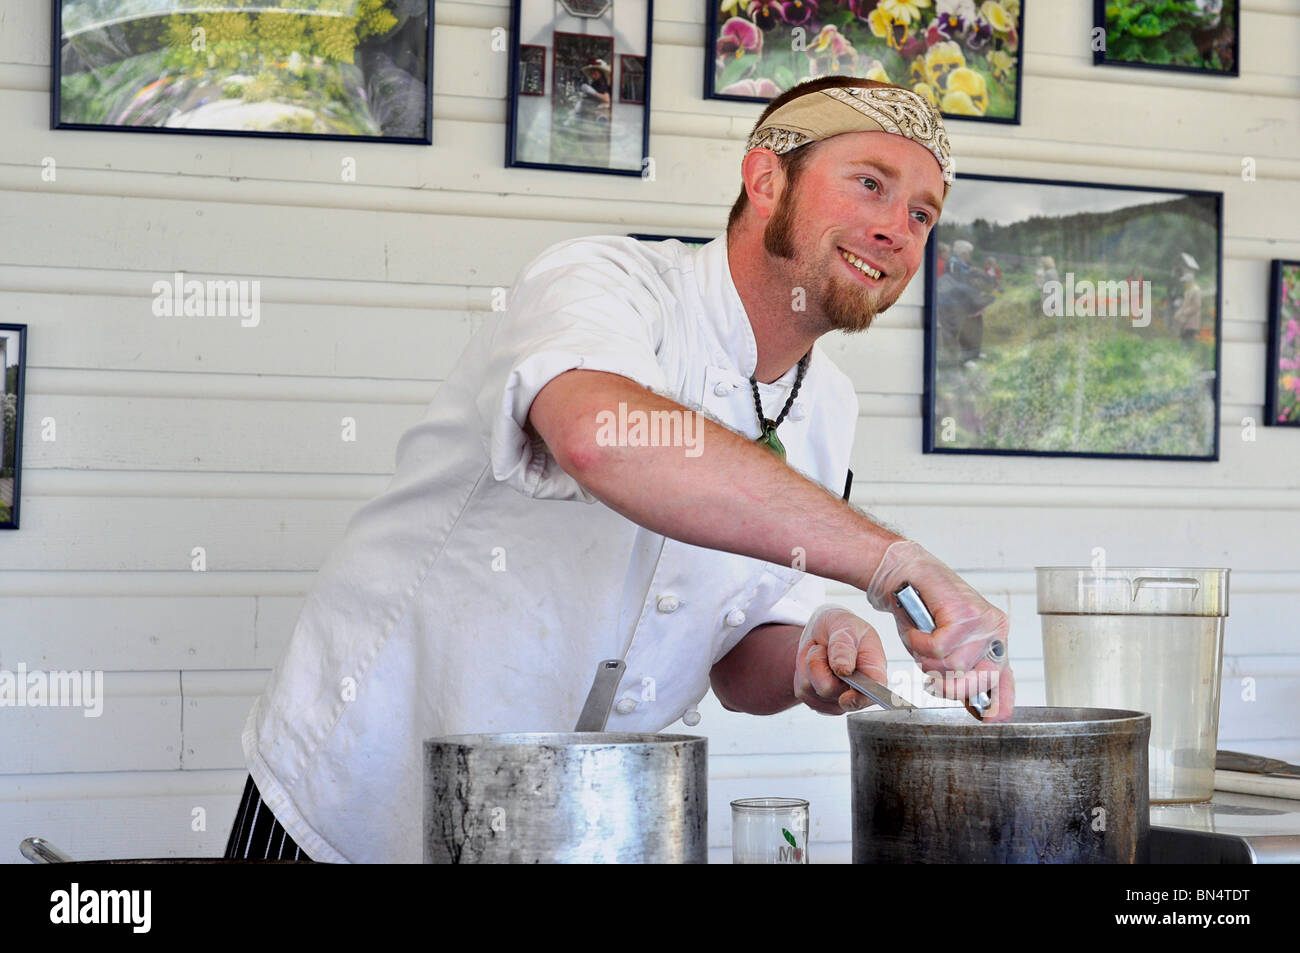 Young Male Chef, Cook - Stock Image